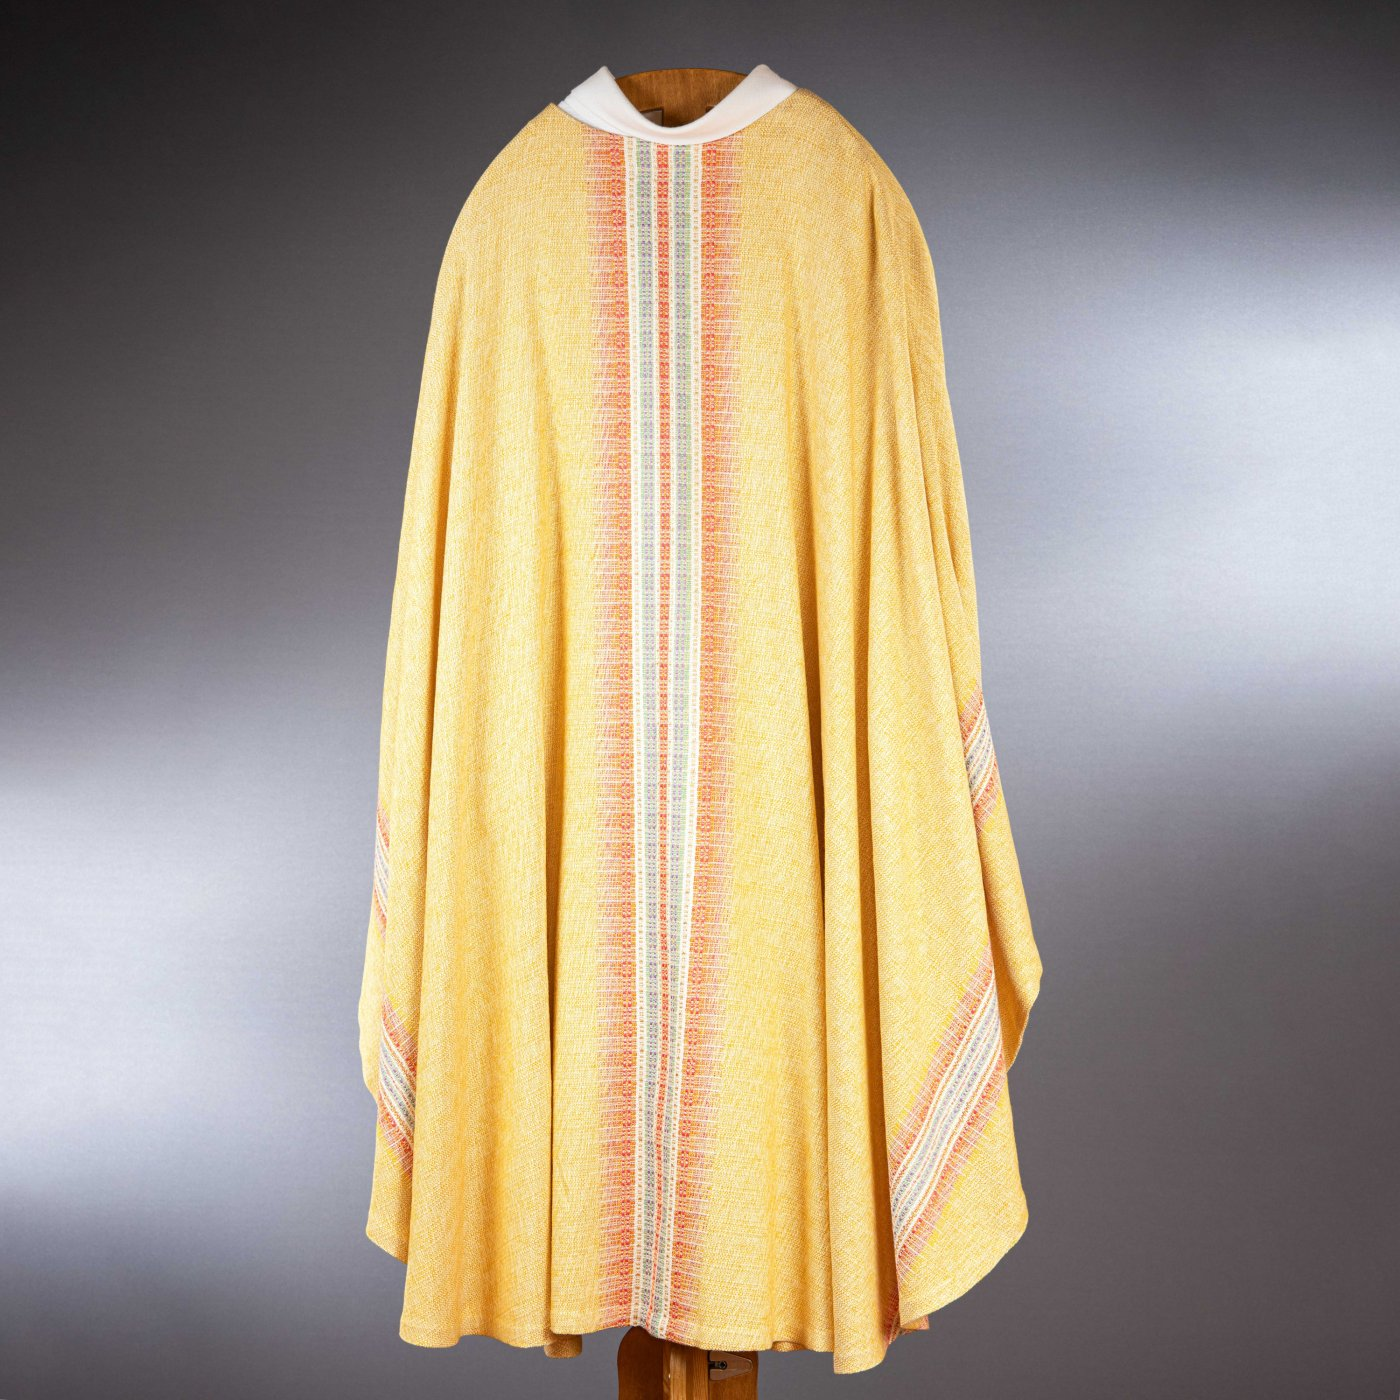 Chasuble or